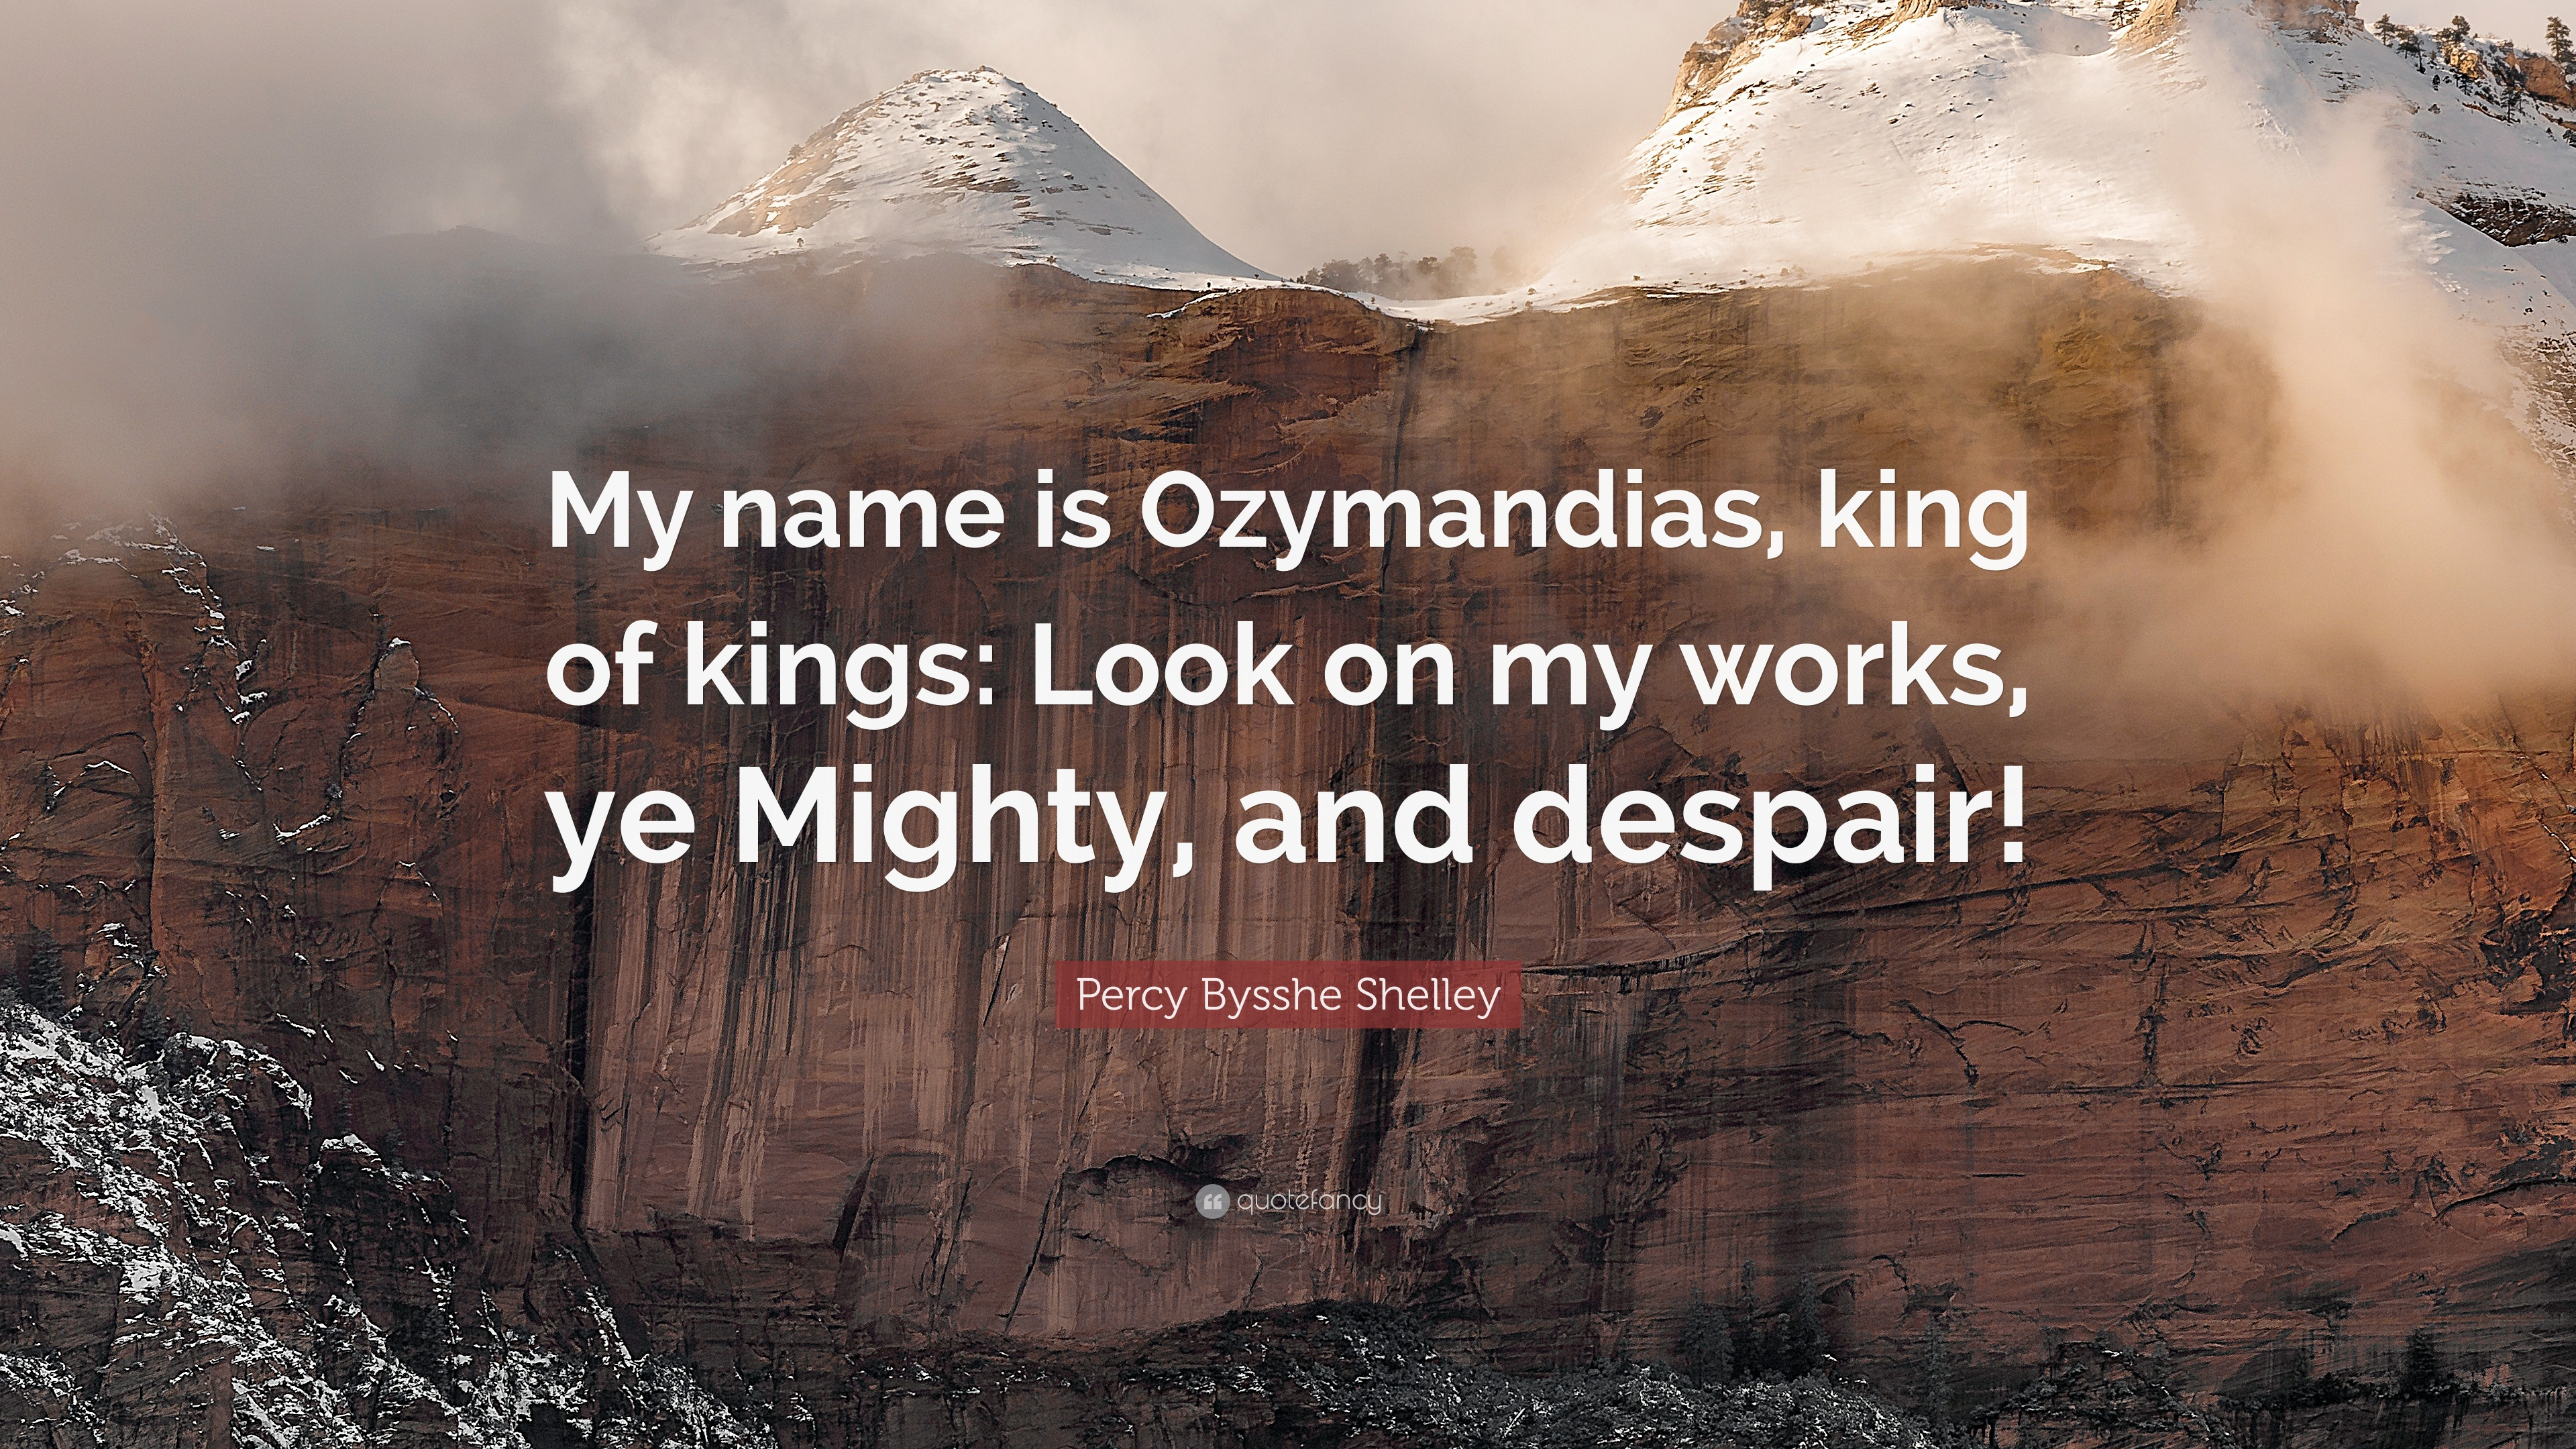 Percy bysshe shelley quotes quotesgram - Filename 1720044 Percy Bysshe Shelley Quote My Name Is Ozymandias King Of Kings Jpg